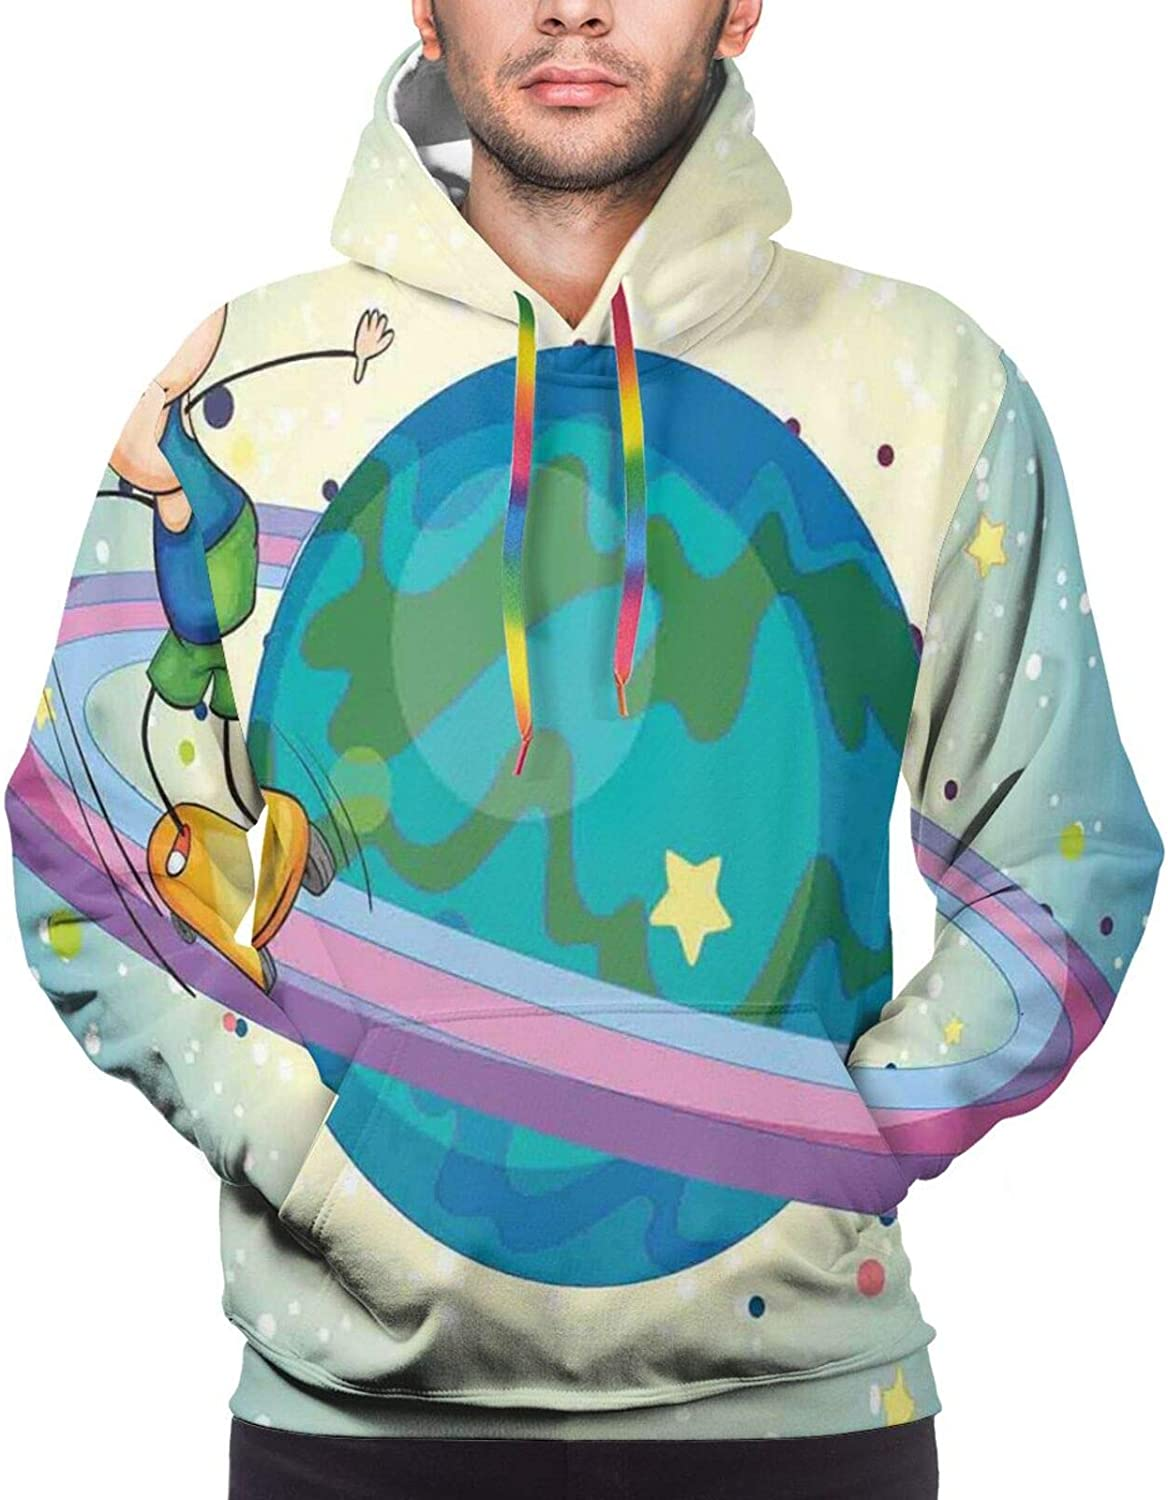 TENJONE Men's Hoodies Sweatshirts,Fantastic Winterland Illustration with Low Poly Style River Mountains and Forest